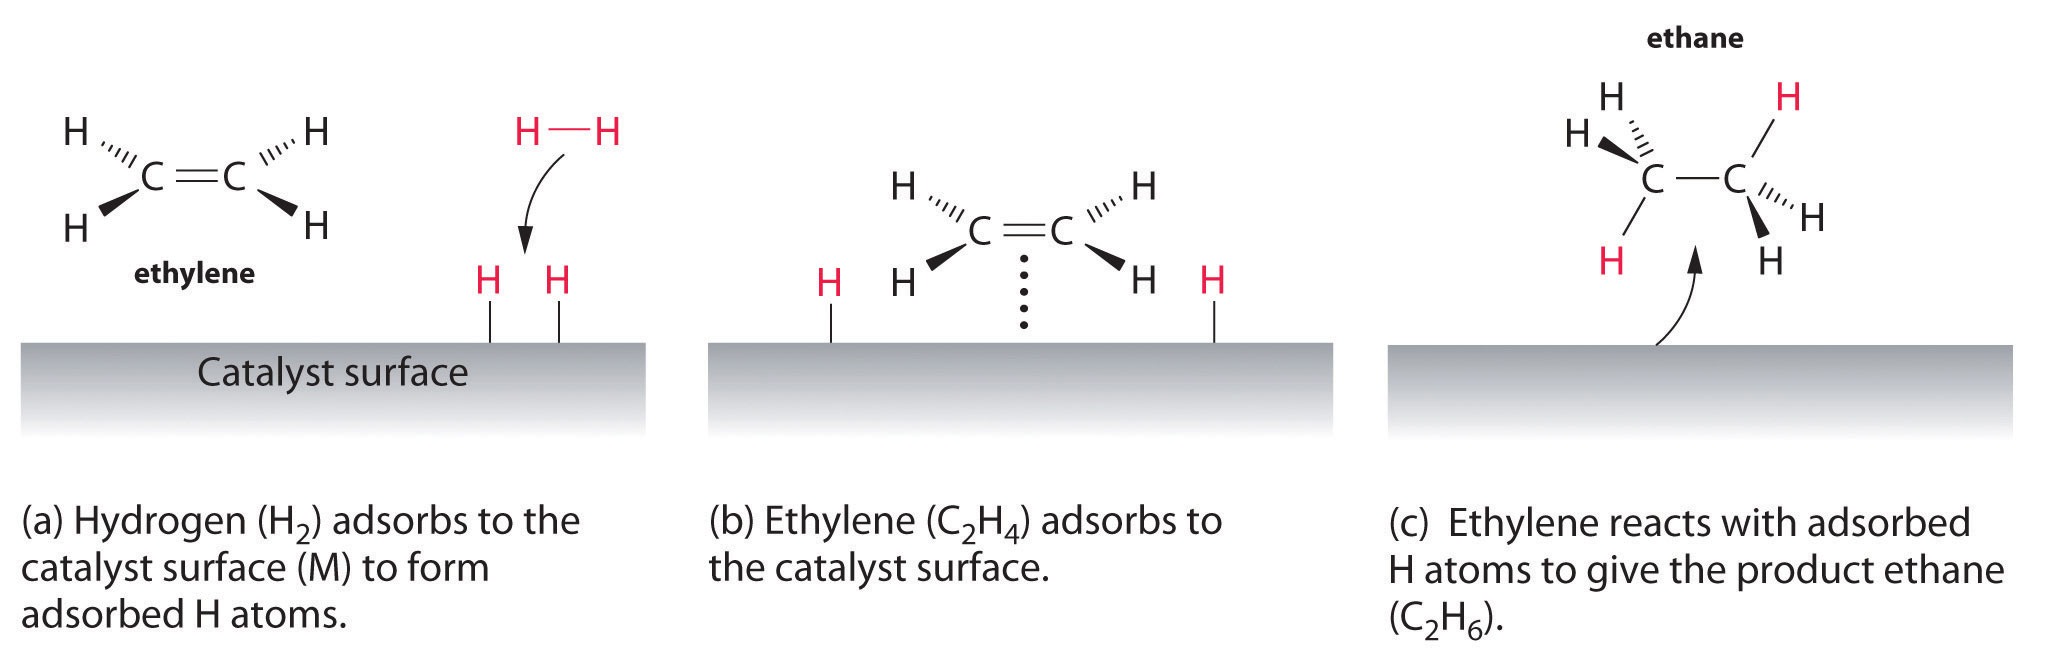 General chemistry principles patterns and applications v10 when a molecule of hydrogen adsorbs to the catalyst surface the hh bond breaks and new mh bonds are formed the individual h atoms are more reactive pooptronica Choice Image